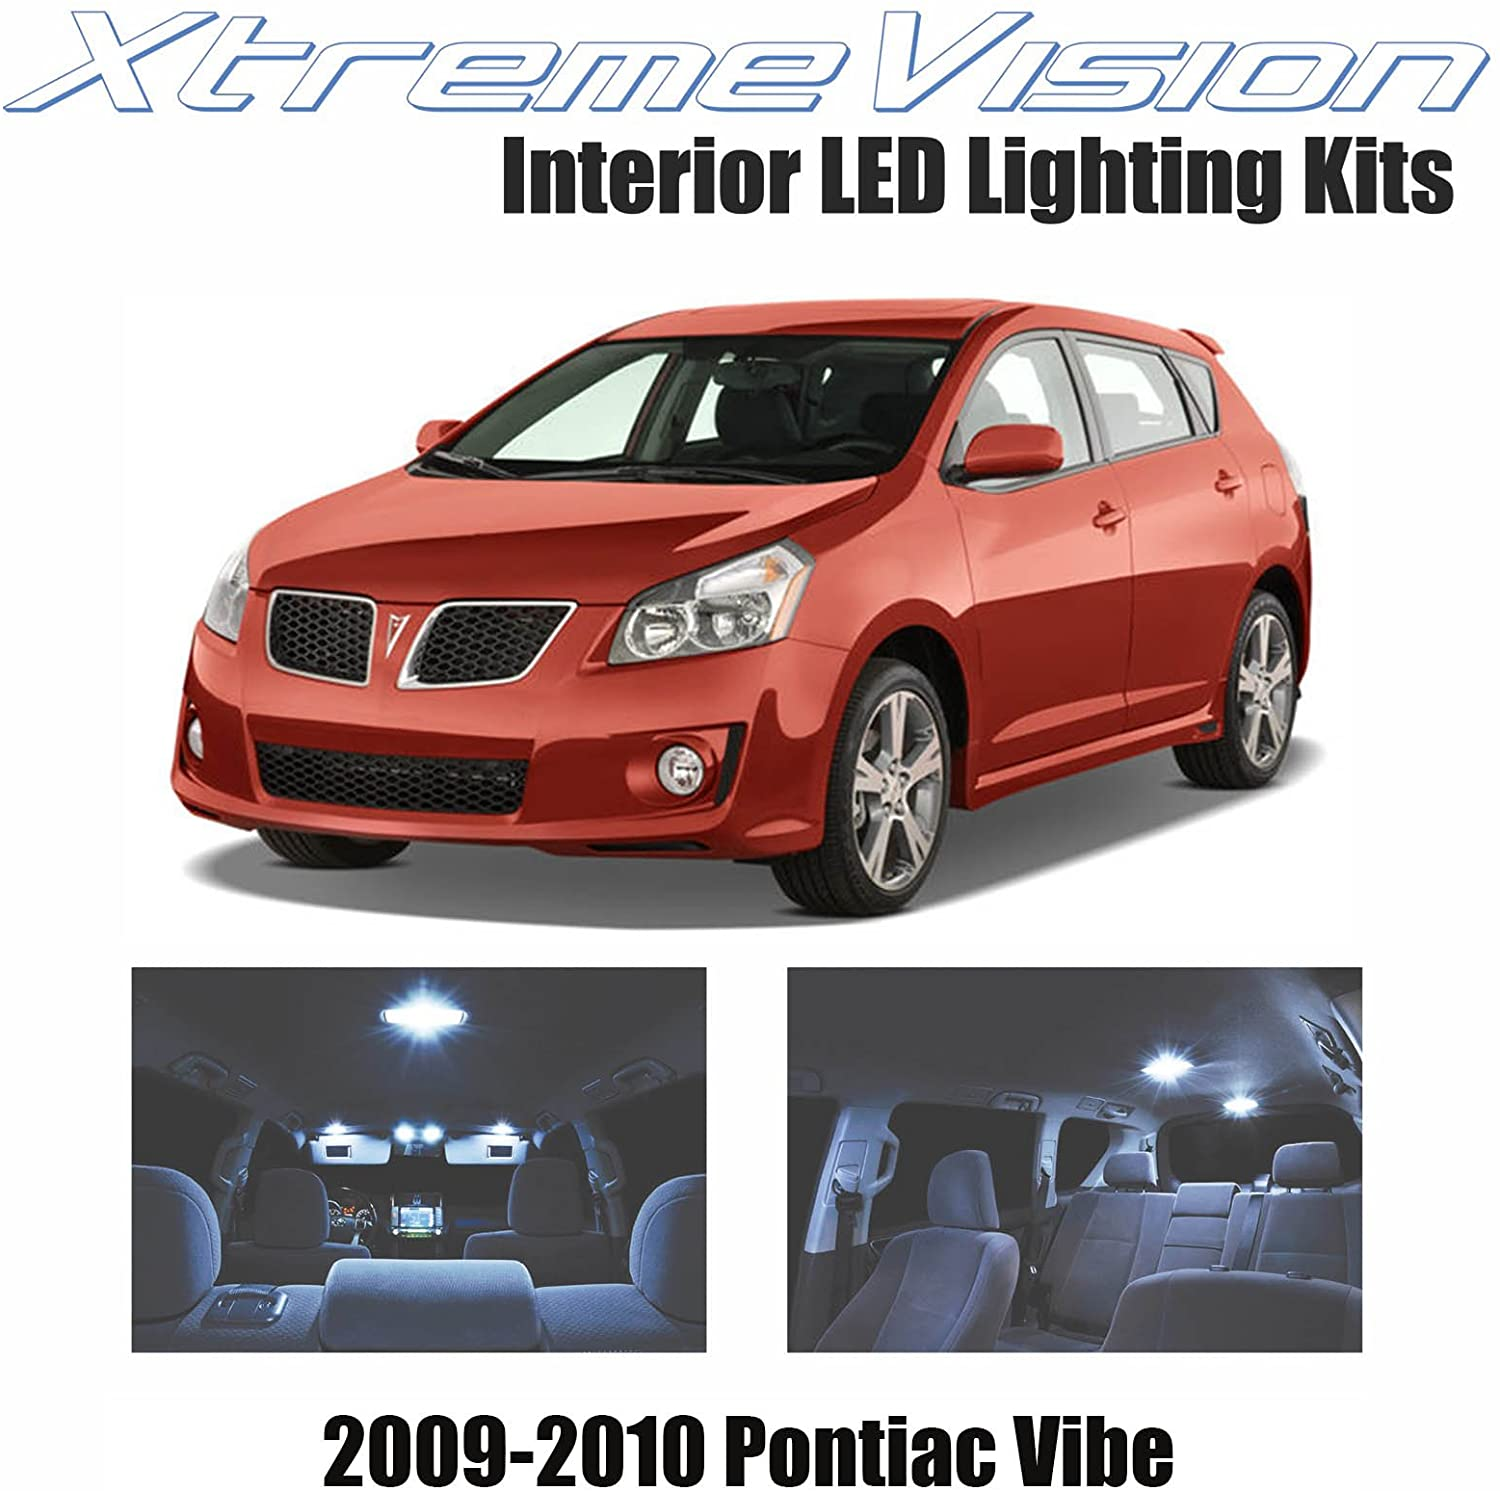 Xtremevision Interior LED for Pontiac Vibe 2009-2010 (5 Pieces) Cool White Interior LED Kit + Installation Tool